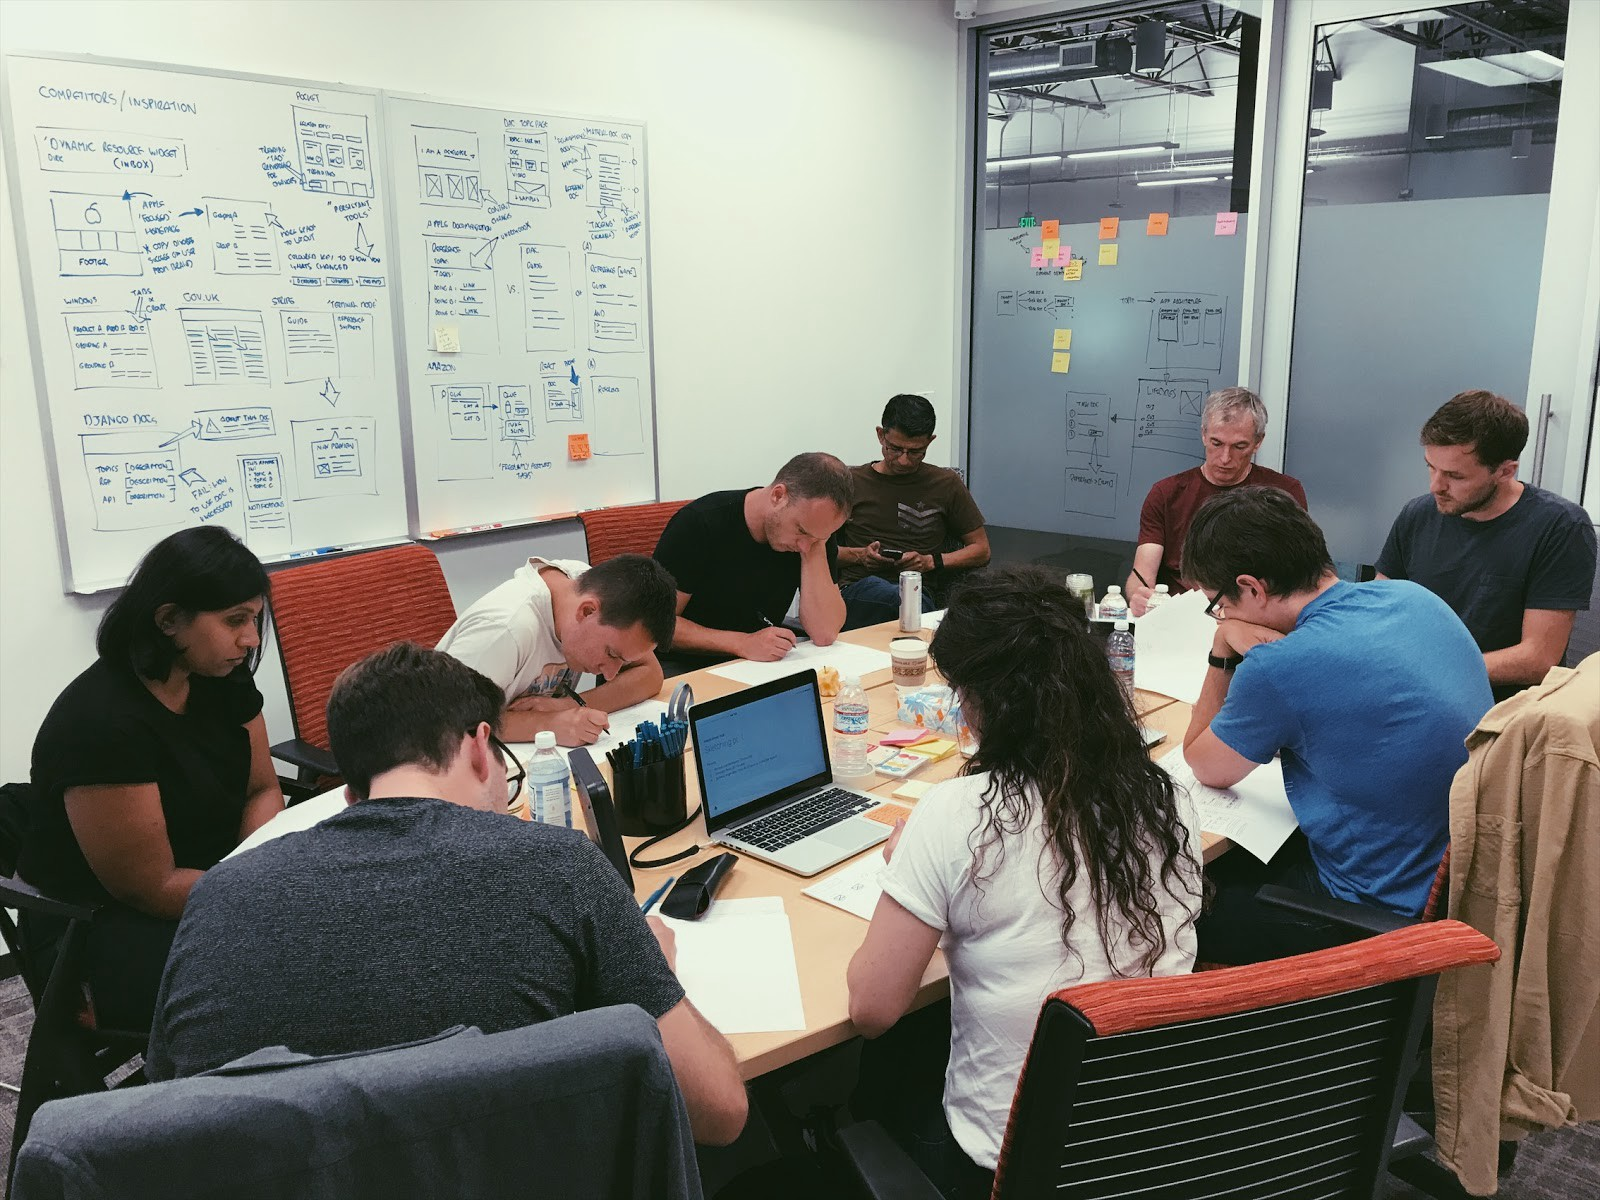 When, what and how to run workshops as part of the product design process